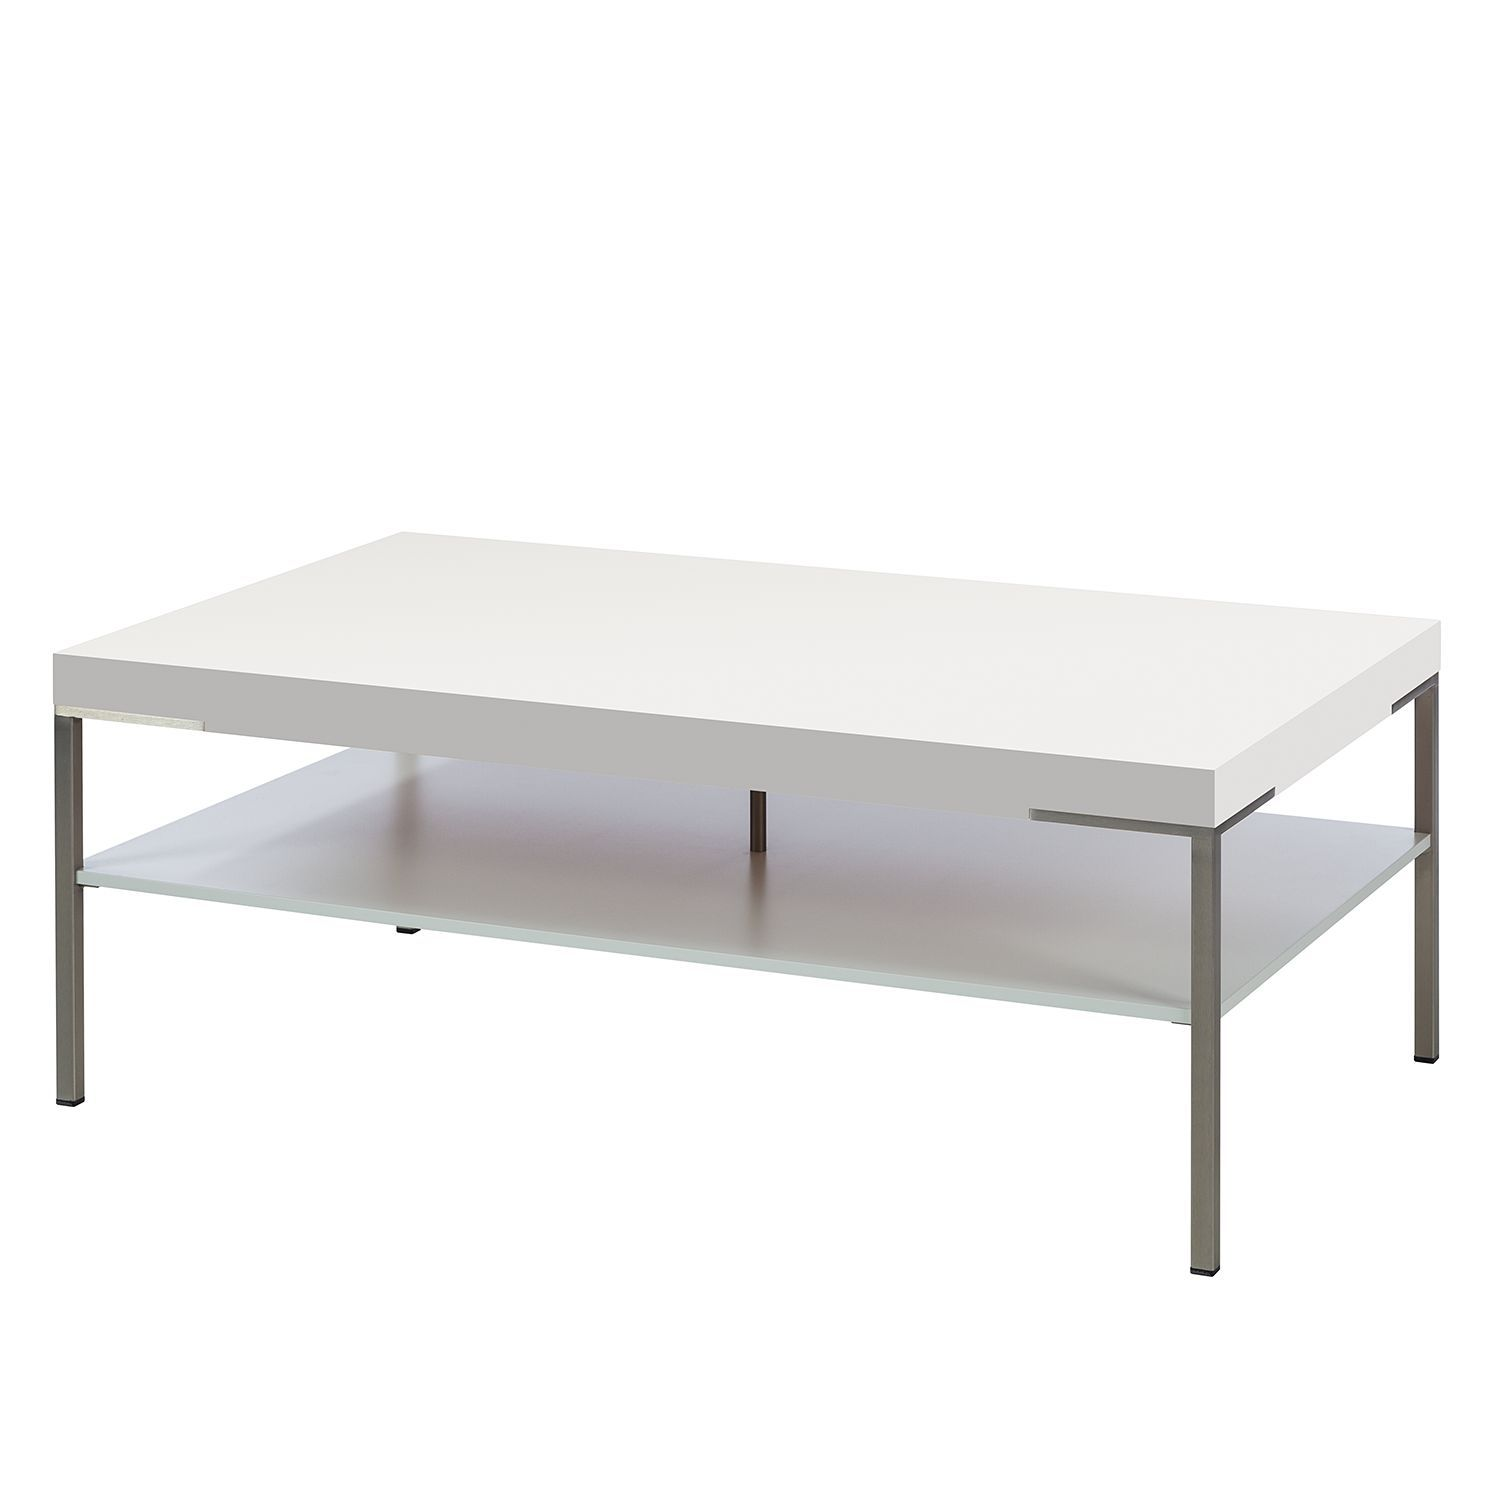 Roomify Couchtisch Tables Basses Basses Tables Tables Basses Design Tables